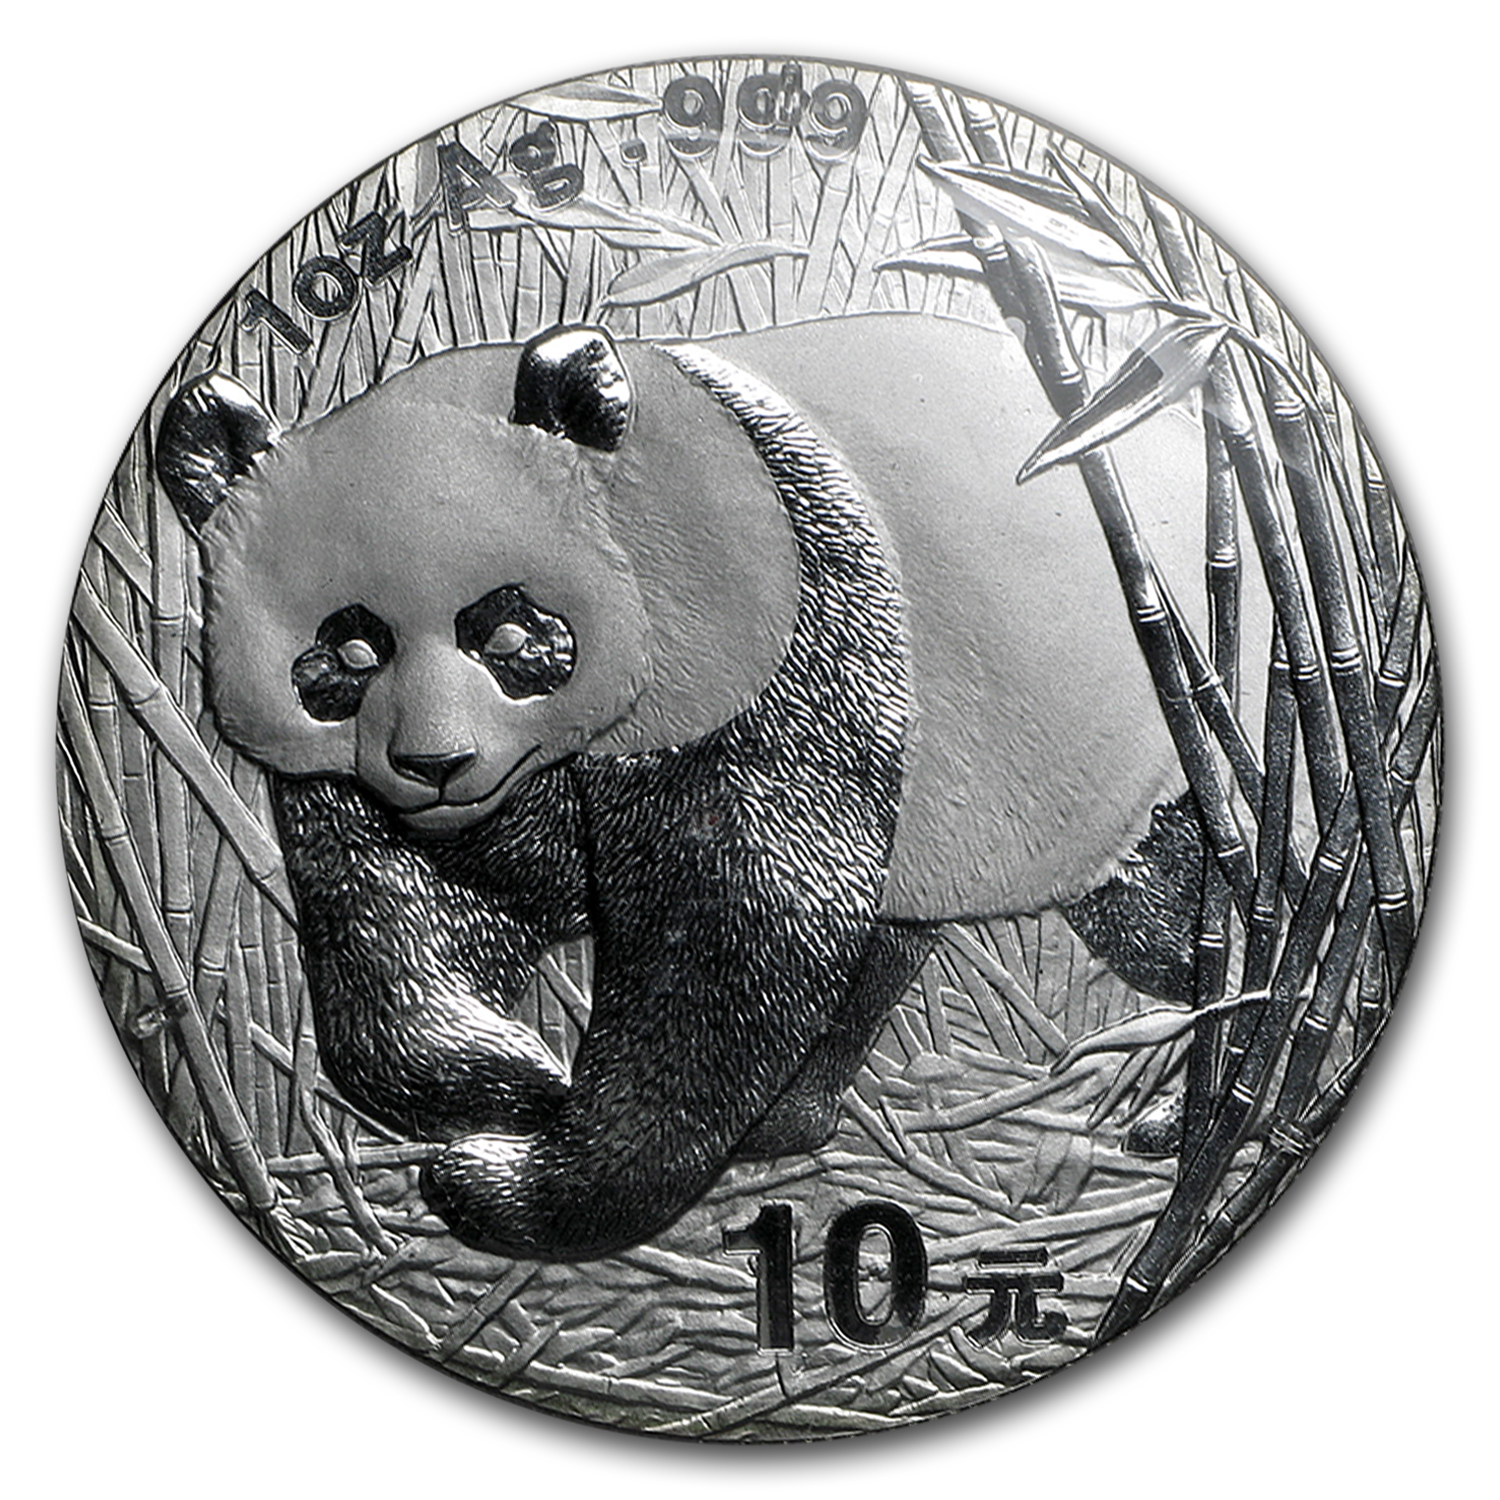 2002 China 1 oz Silver Panda BU (Sealed)